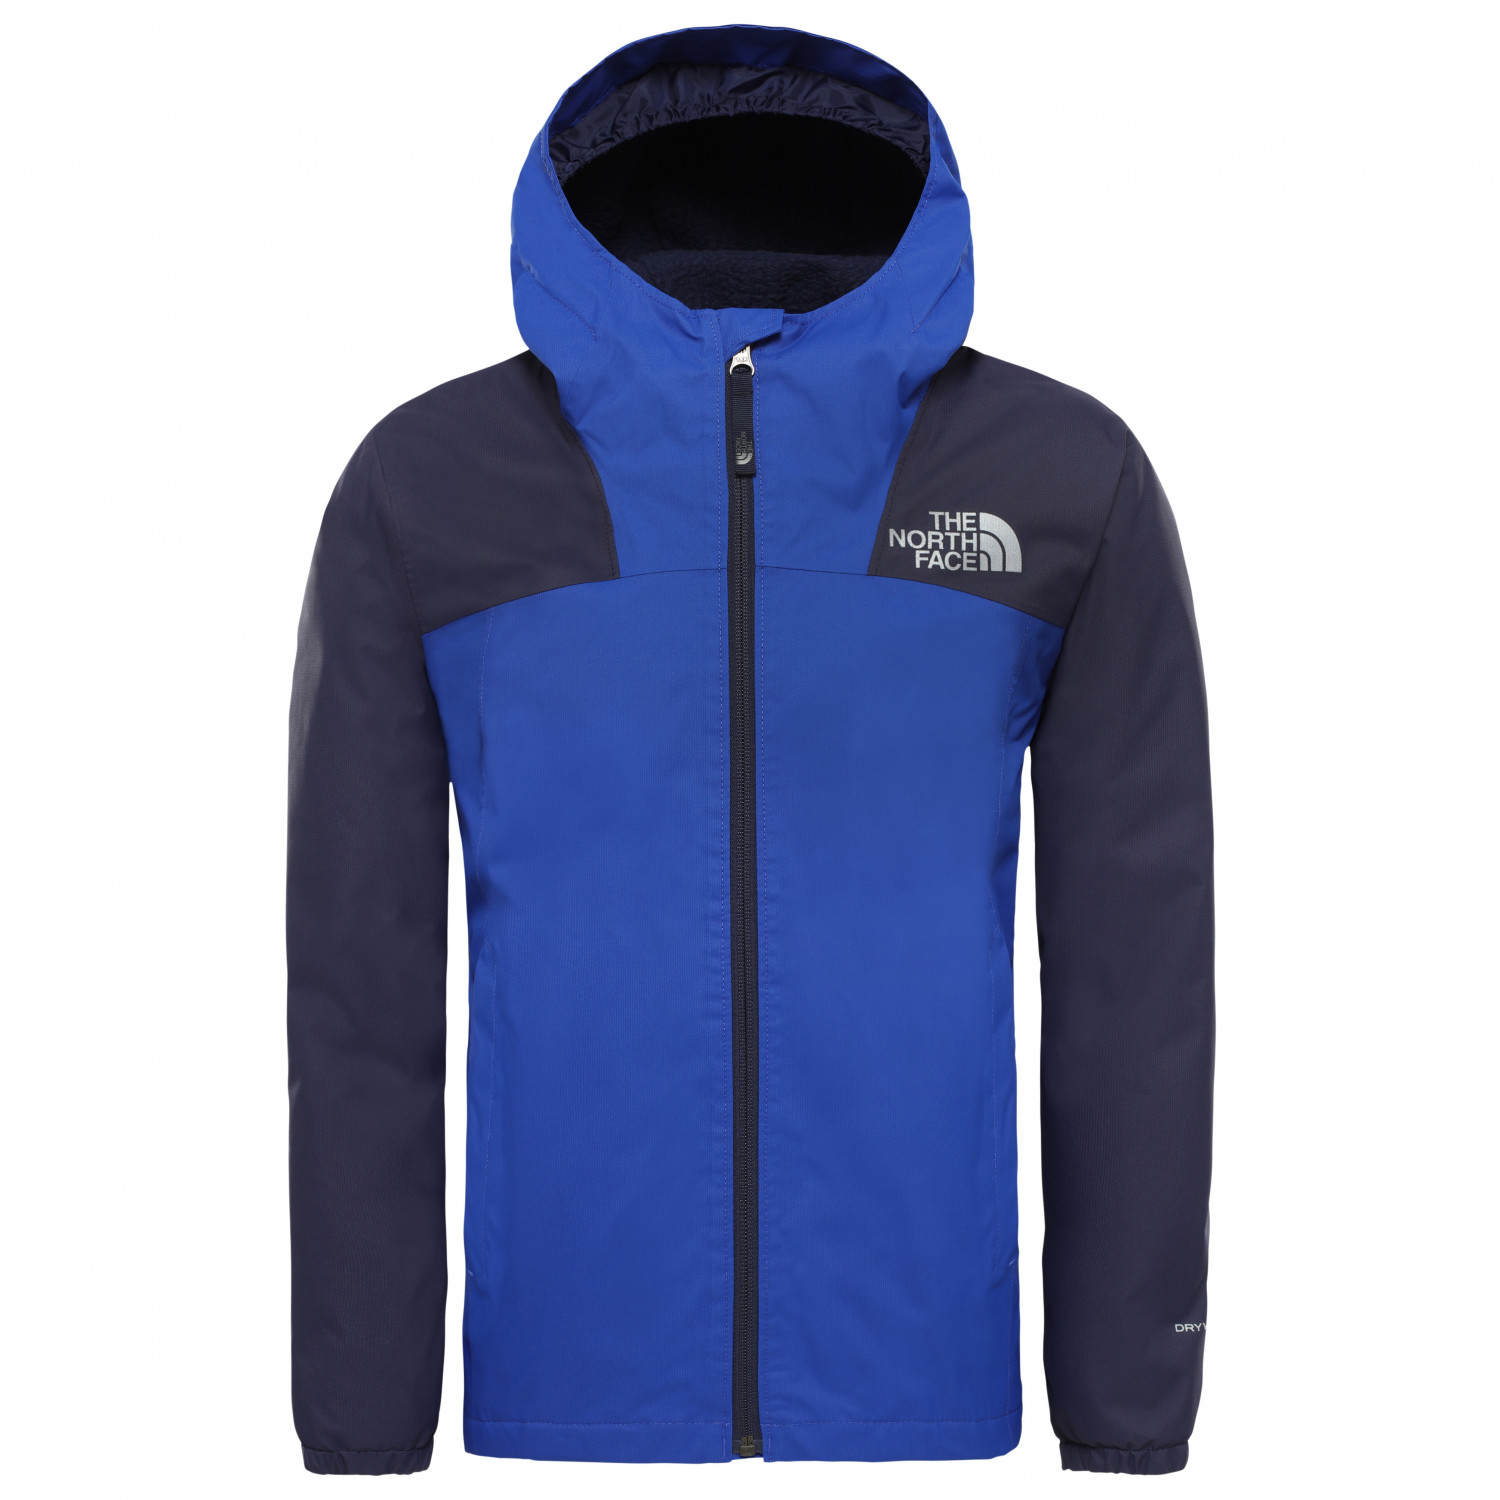 71d3bd76a The North Face - Boy's Warm Storm Jacket - Winter jacket - TNF Blue | XS